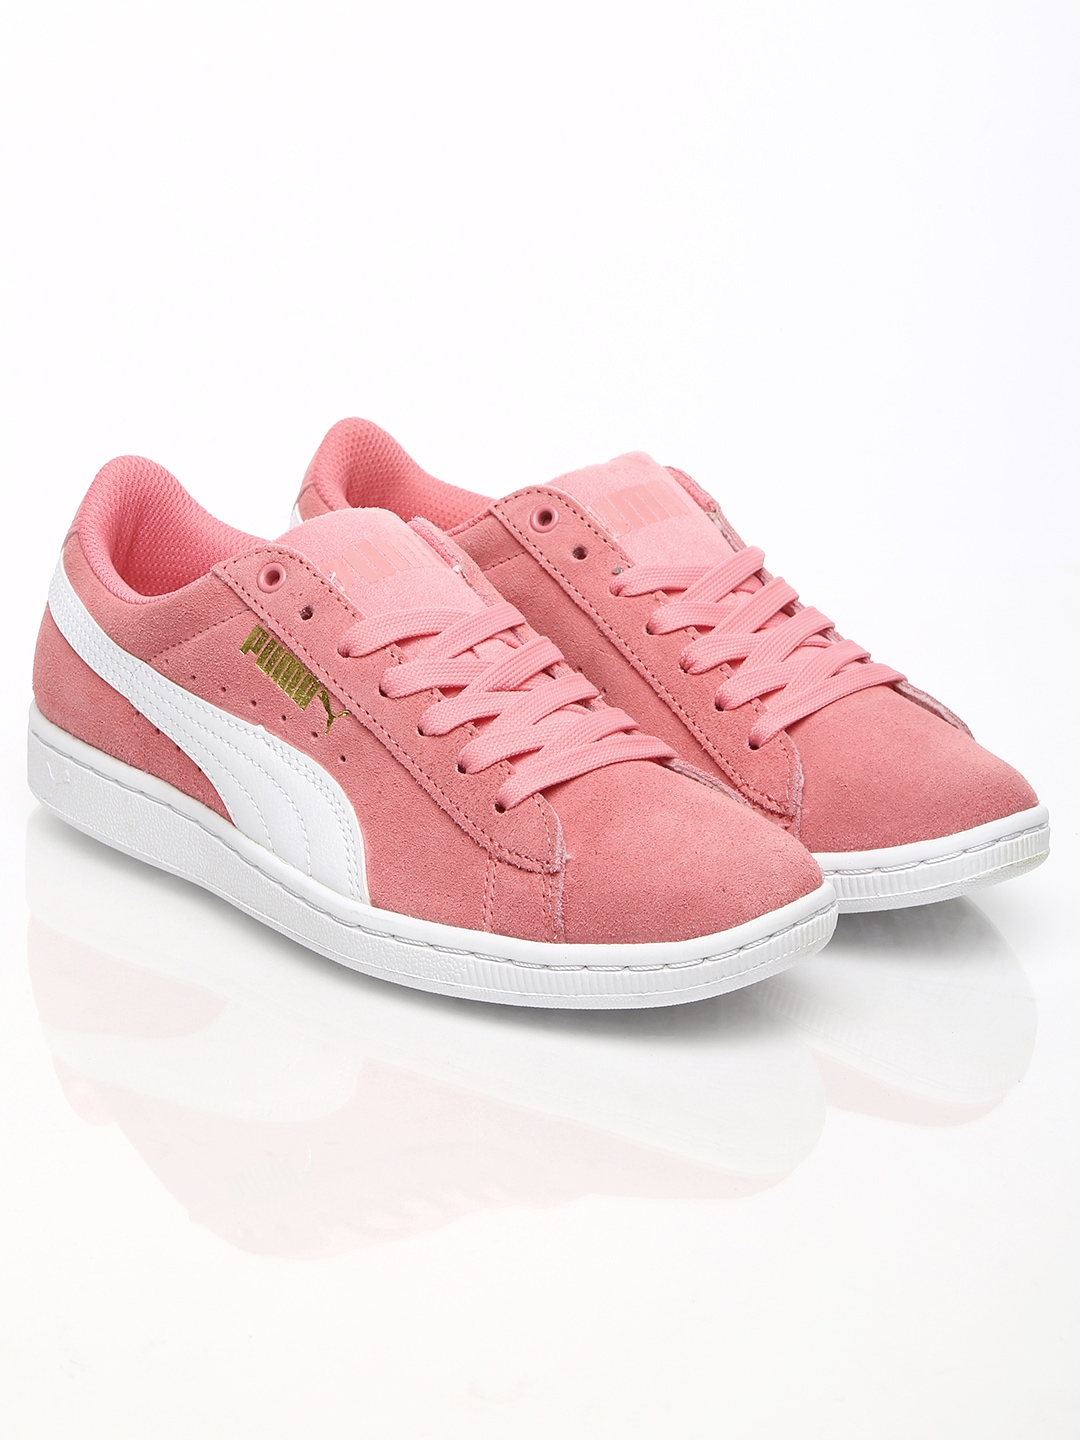 puma women on sale > OFF73% Discounts